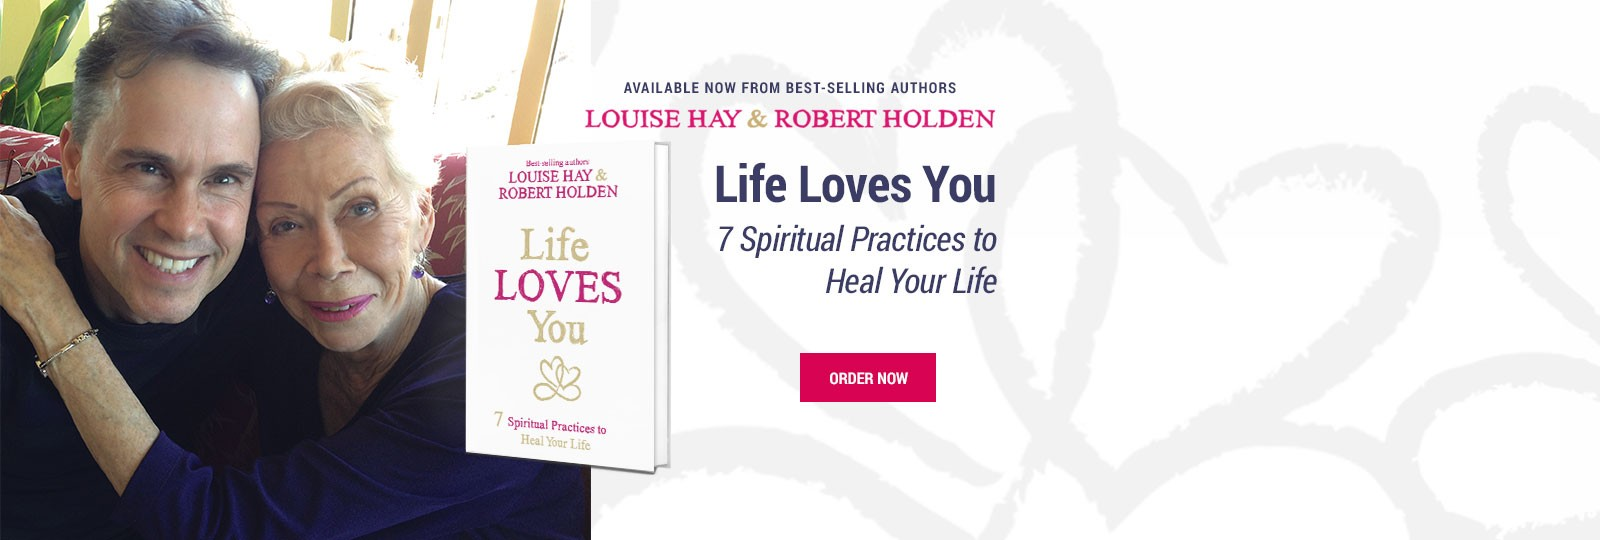 The New Book From Louise Hay & Robert Holden - Life Loves You